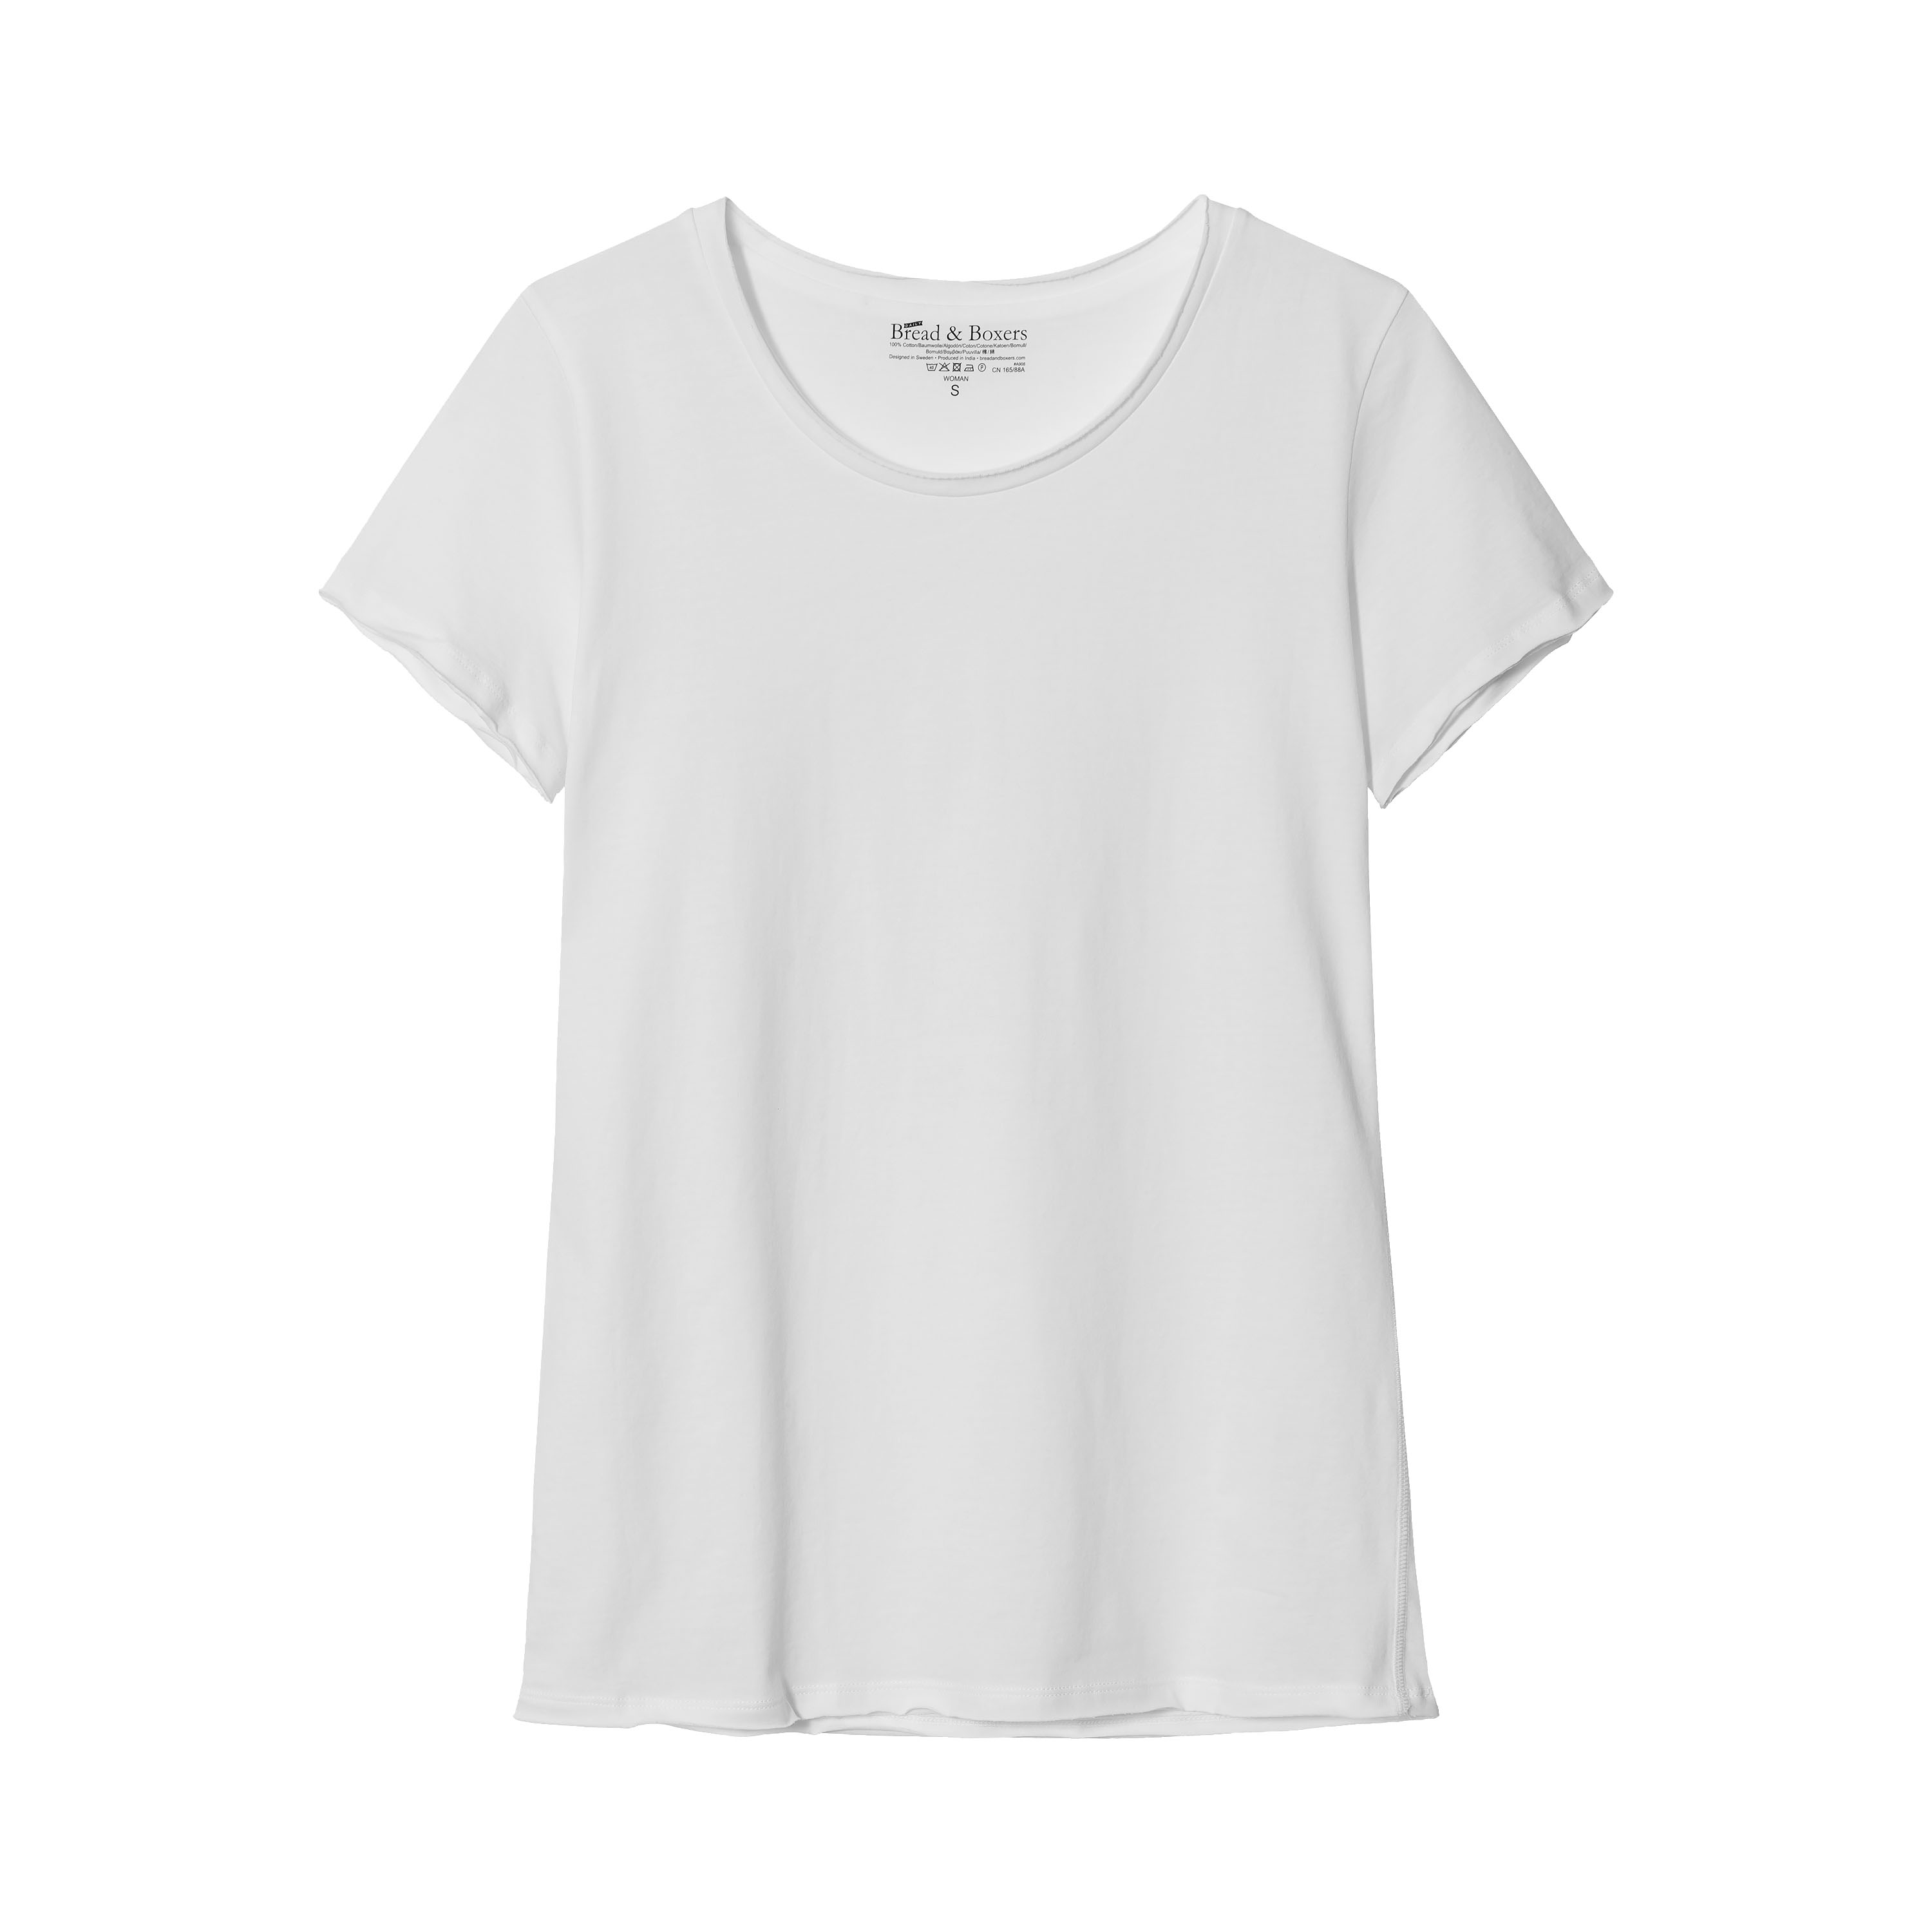 W_Crew-Neck_Relaxed_White_F (w)